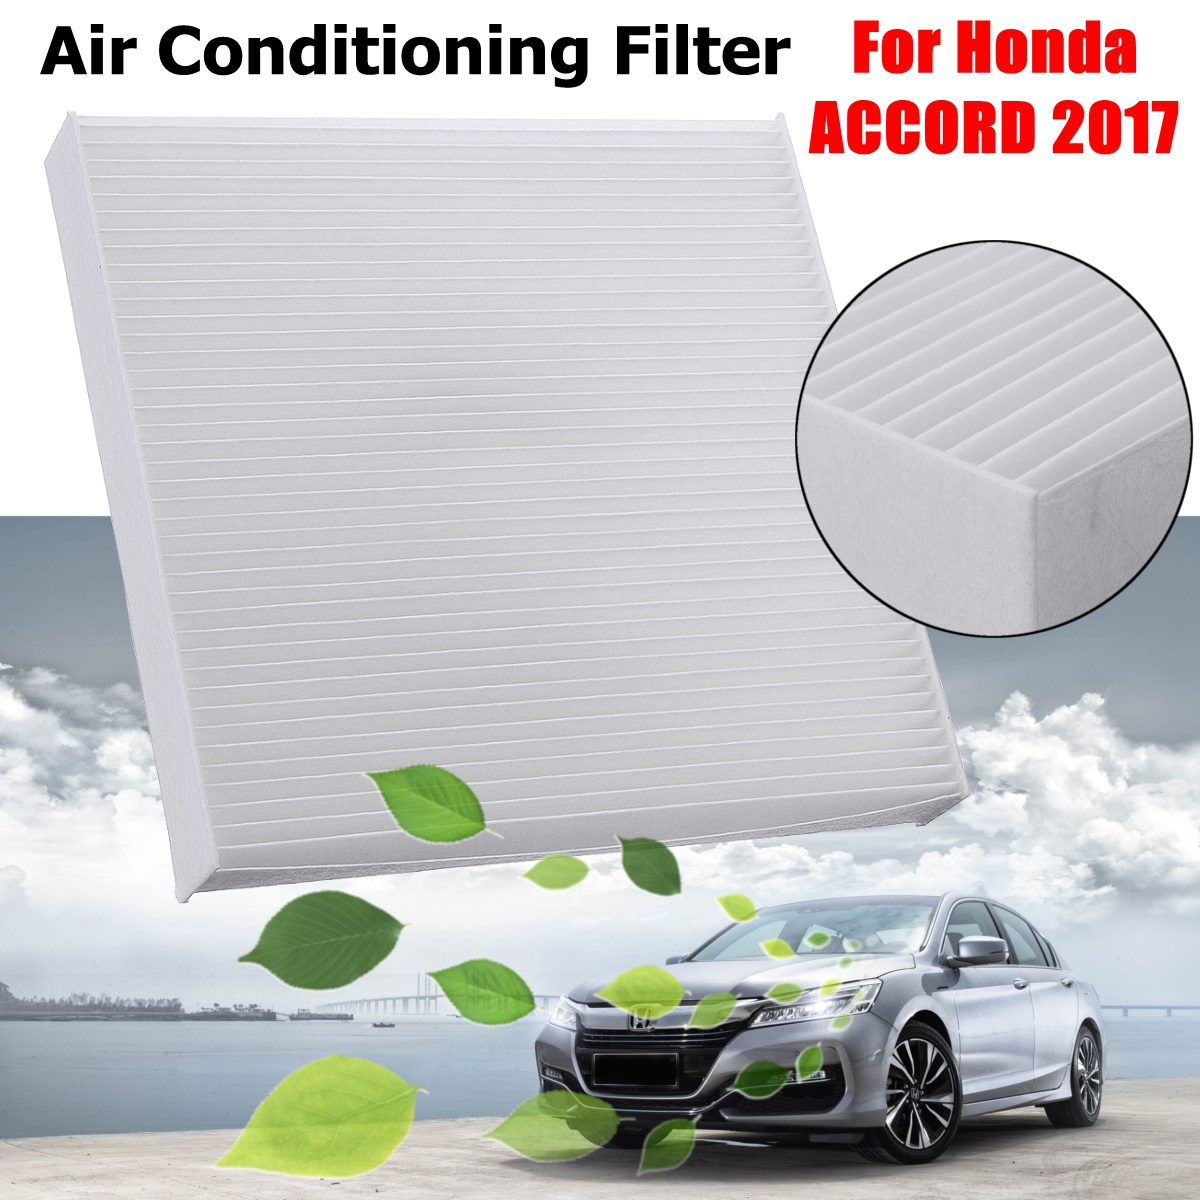 1pcs Automotive Cabin Air Conditioning Filter For Honda Accord 2017 Fits Multiple Models